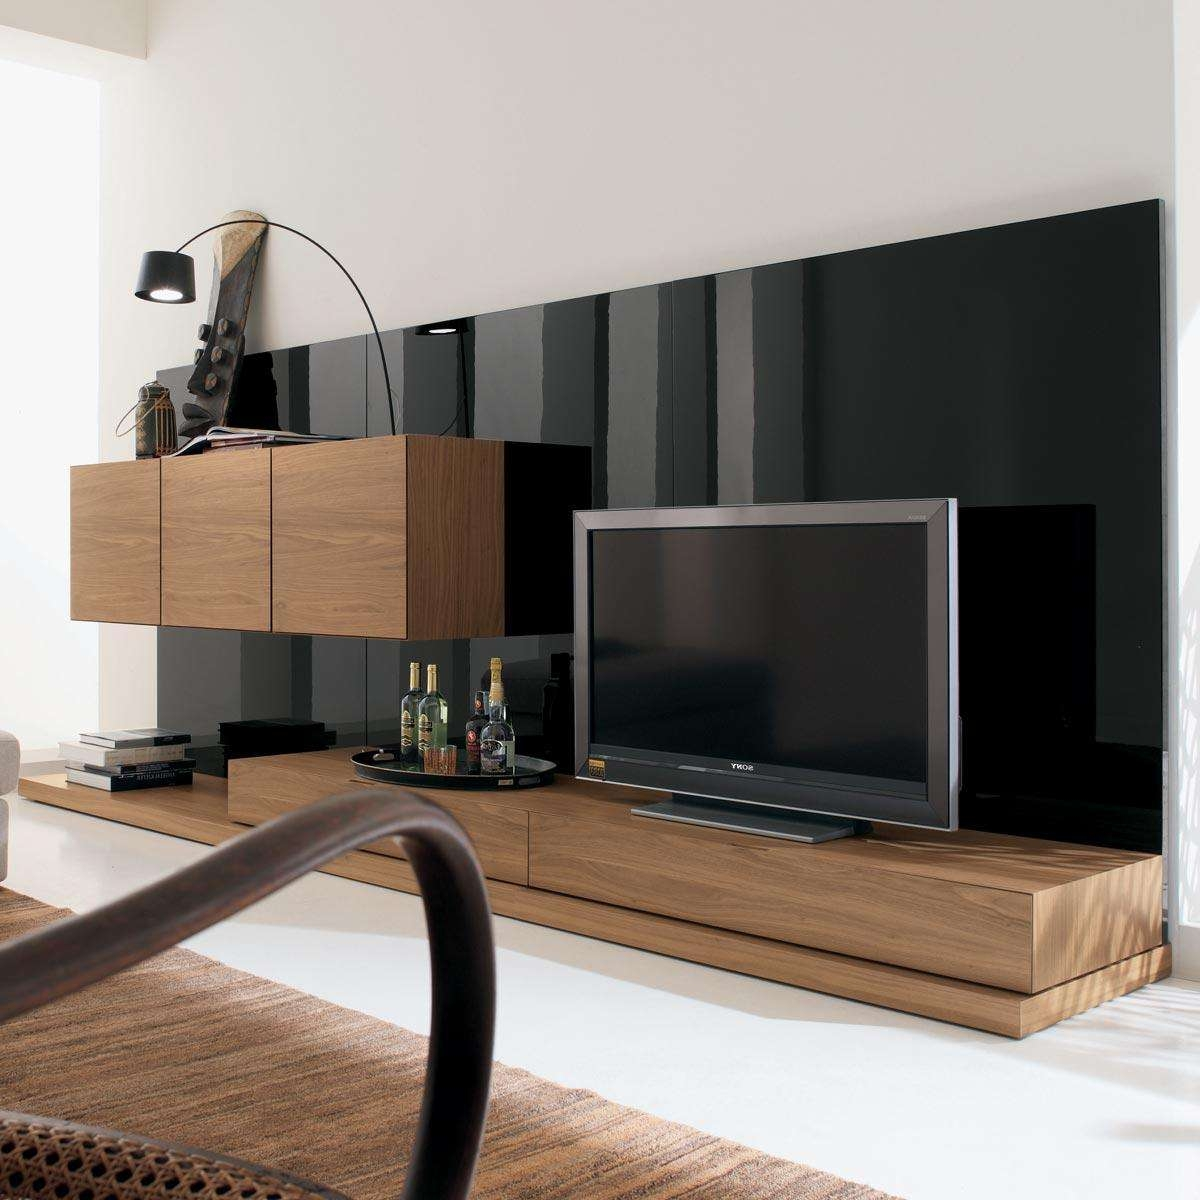 Modern Nature Wood Big Screen Tv Stand Wall Mounted Living Room With Wooden Tv Stands And Cabinets (View 5 of 15)